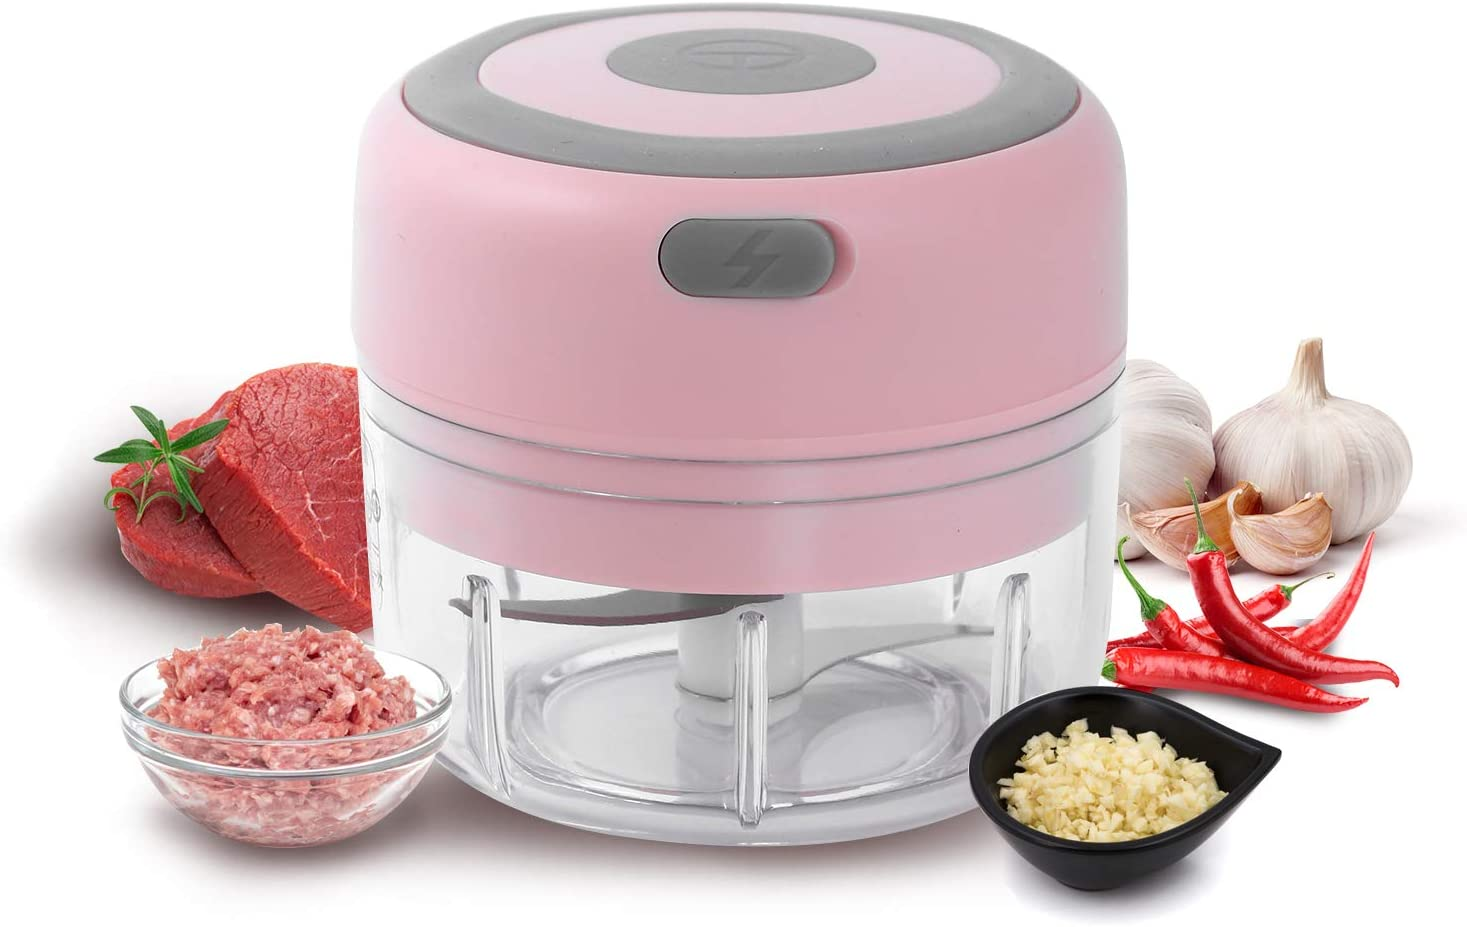 Electric Mini Garlic Chopper, Food Slicer And Chopper 100ML, Kuopry Blender to Meat/Vegetables/Chop Fruits/Onion/Garlicr, Wireless Portable Food Processor, Mini Chopper Food Processor-Pink